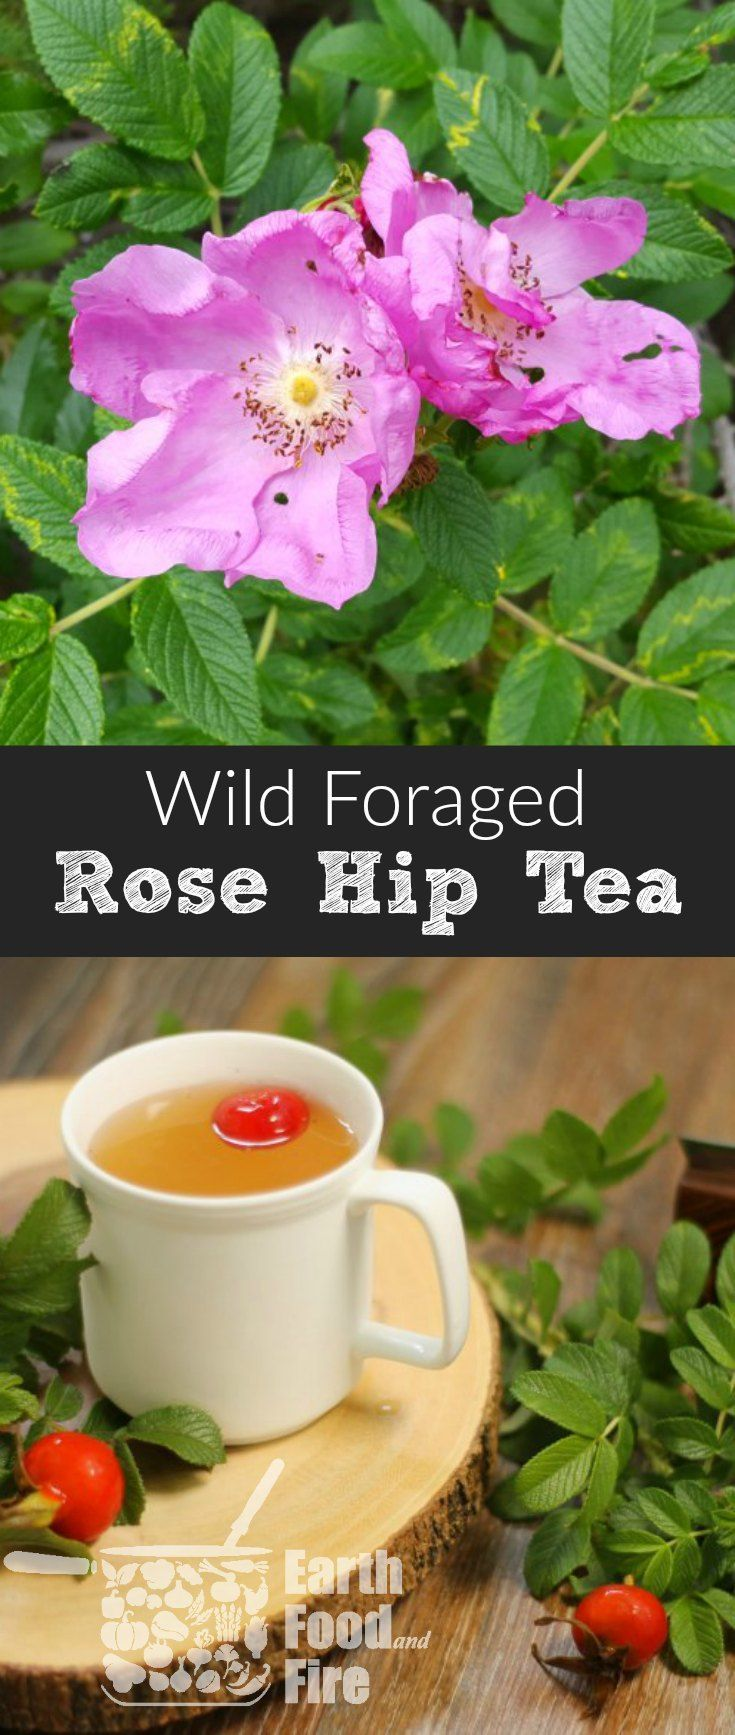 A tart and slightly fruity tea made with foraged wild rose hips, this drink is excellent for use in combating colds and flus due to it's high Vitamin C content. #rosehips #tea #foraging #healthy via @earthfoodandfire